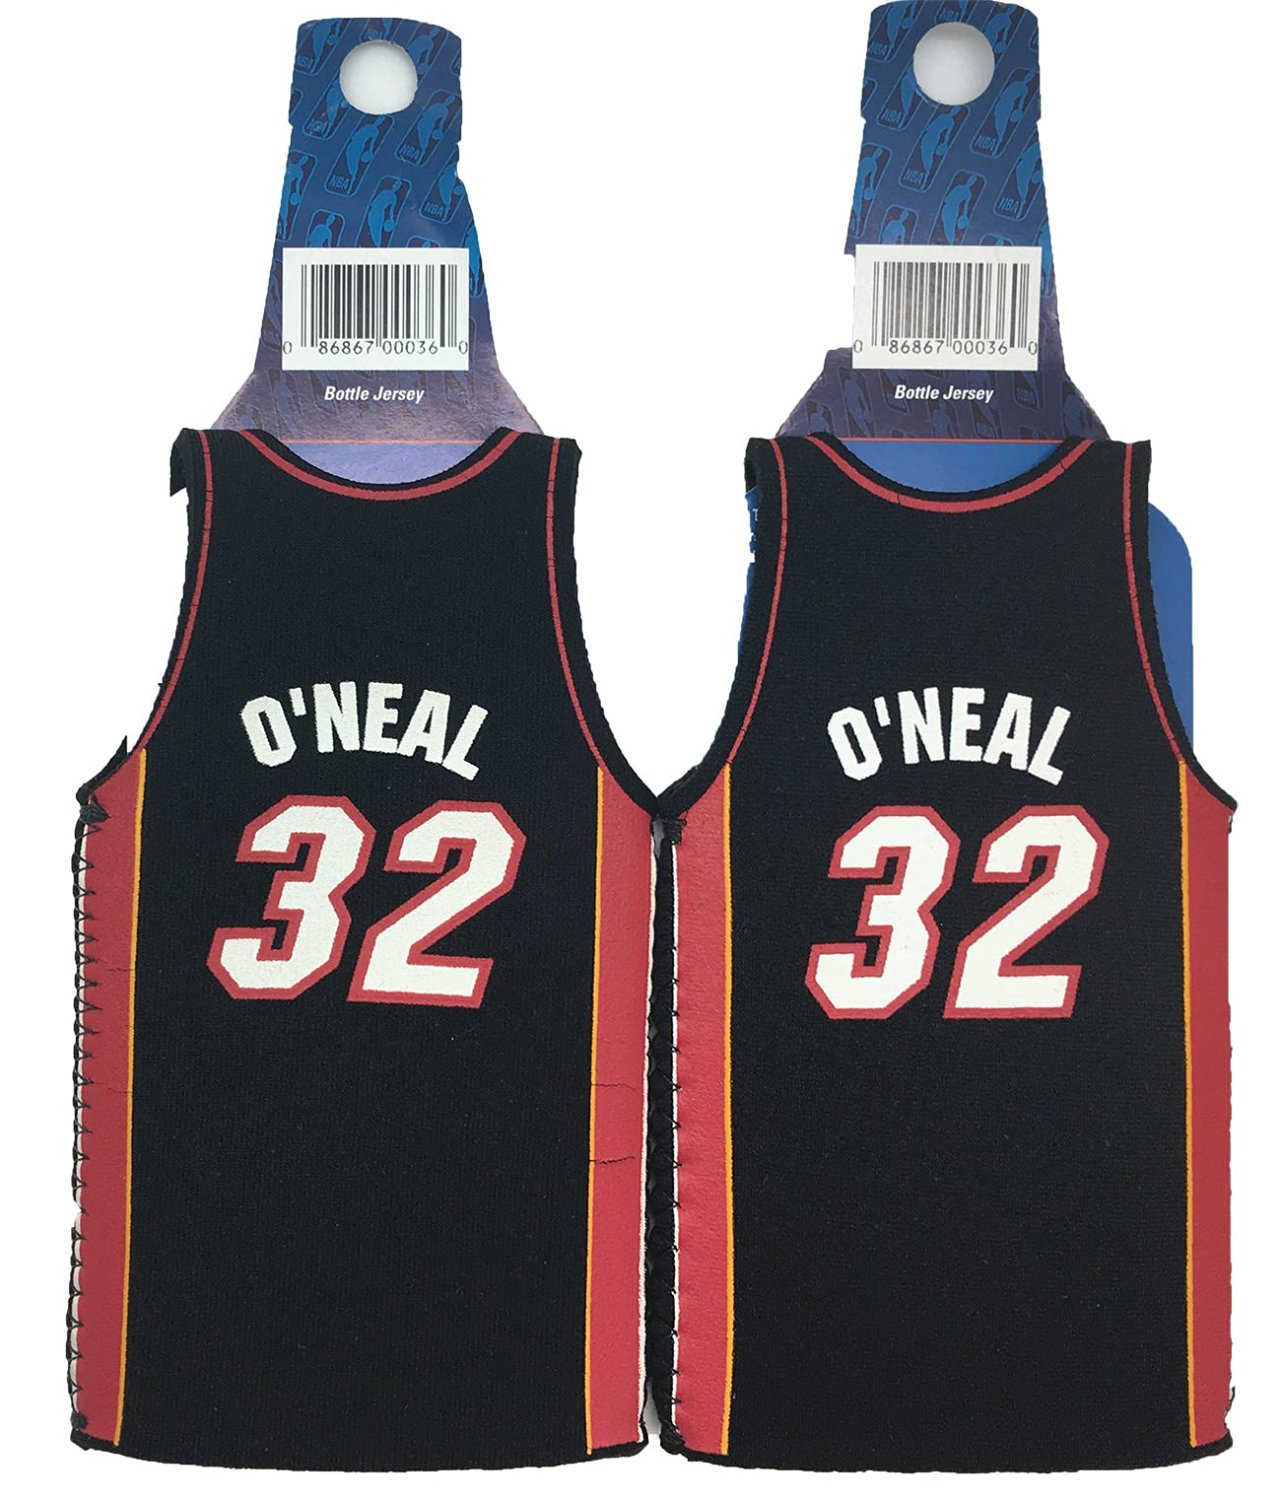 reputable site a8f73 bef88 Buy NBA Shaquille ONeal #32 Miami Heat Throwback Jersey ...